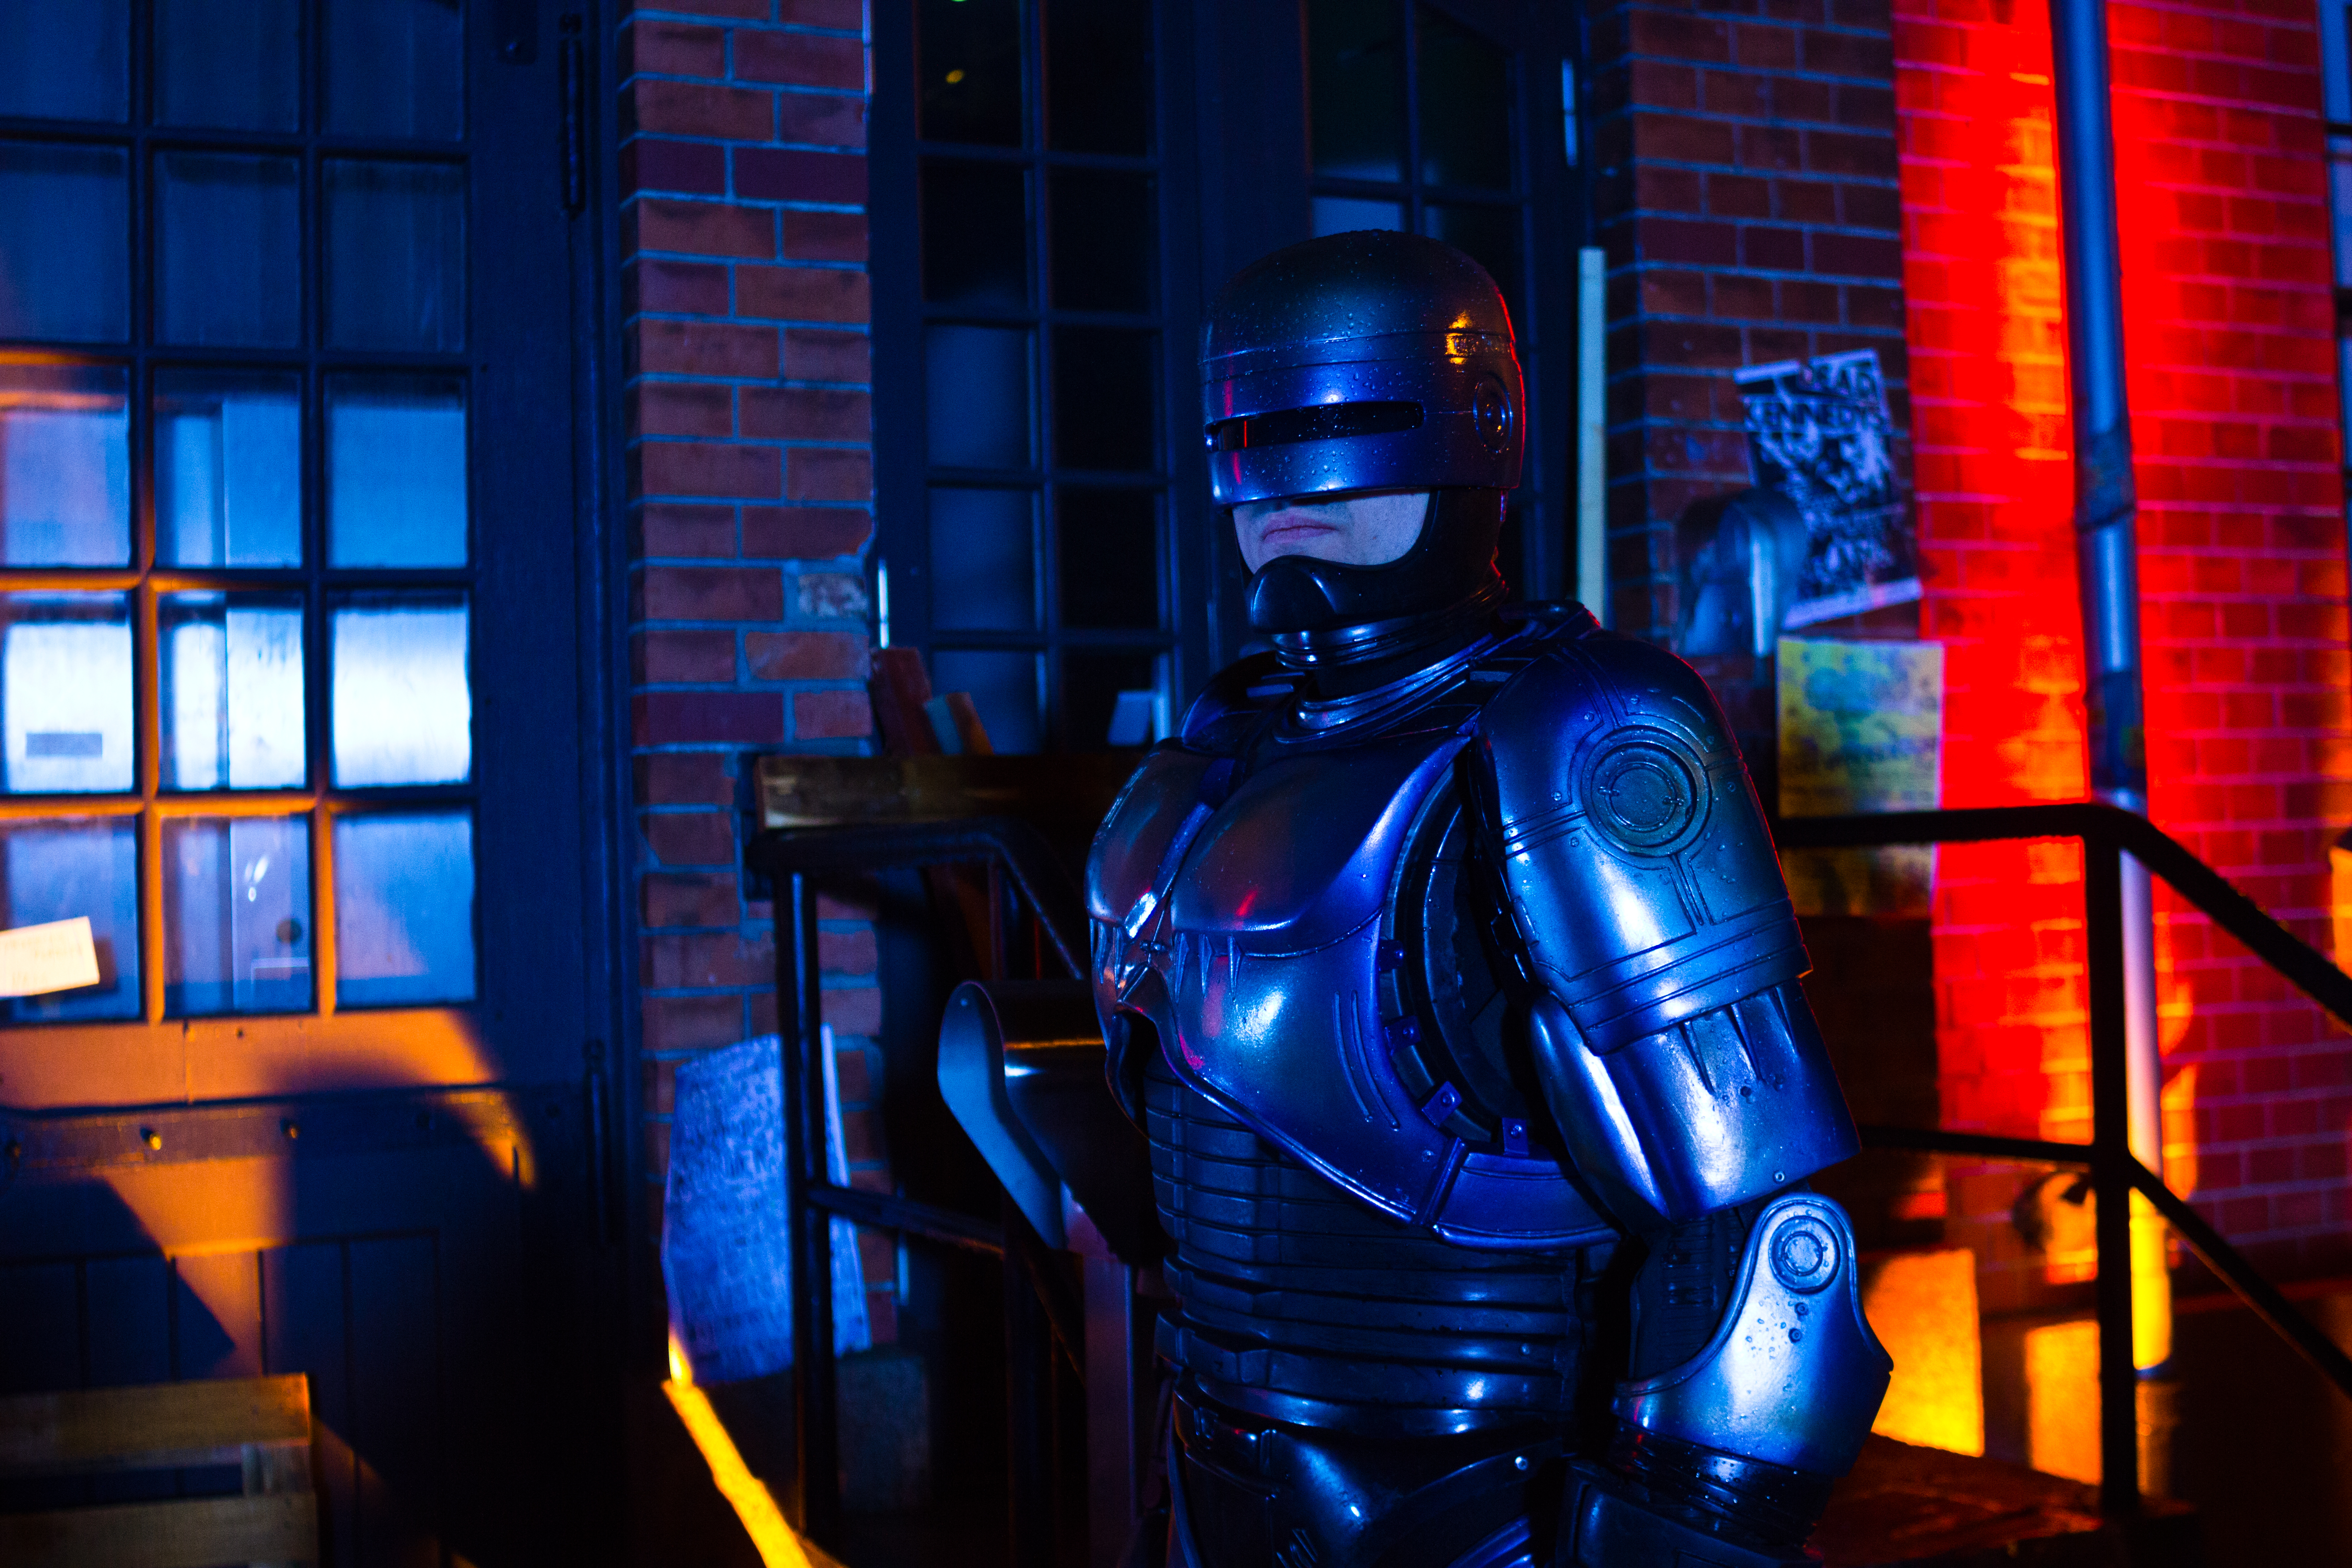 robocop images robocop fan film hd wallpaper and background photos